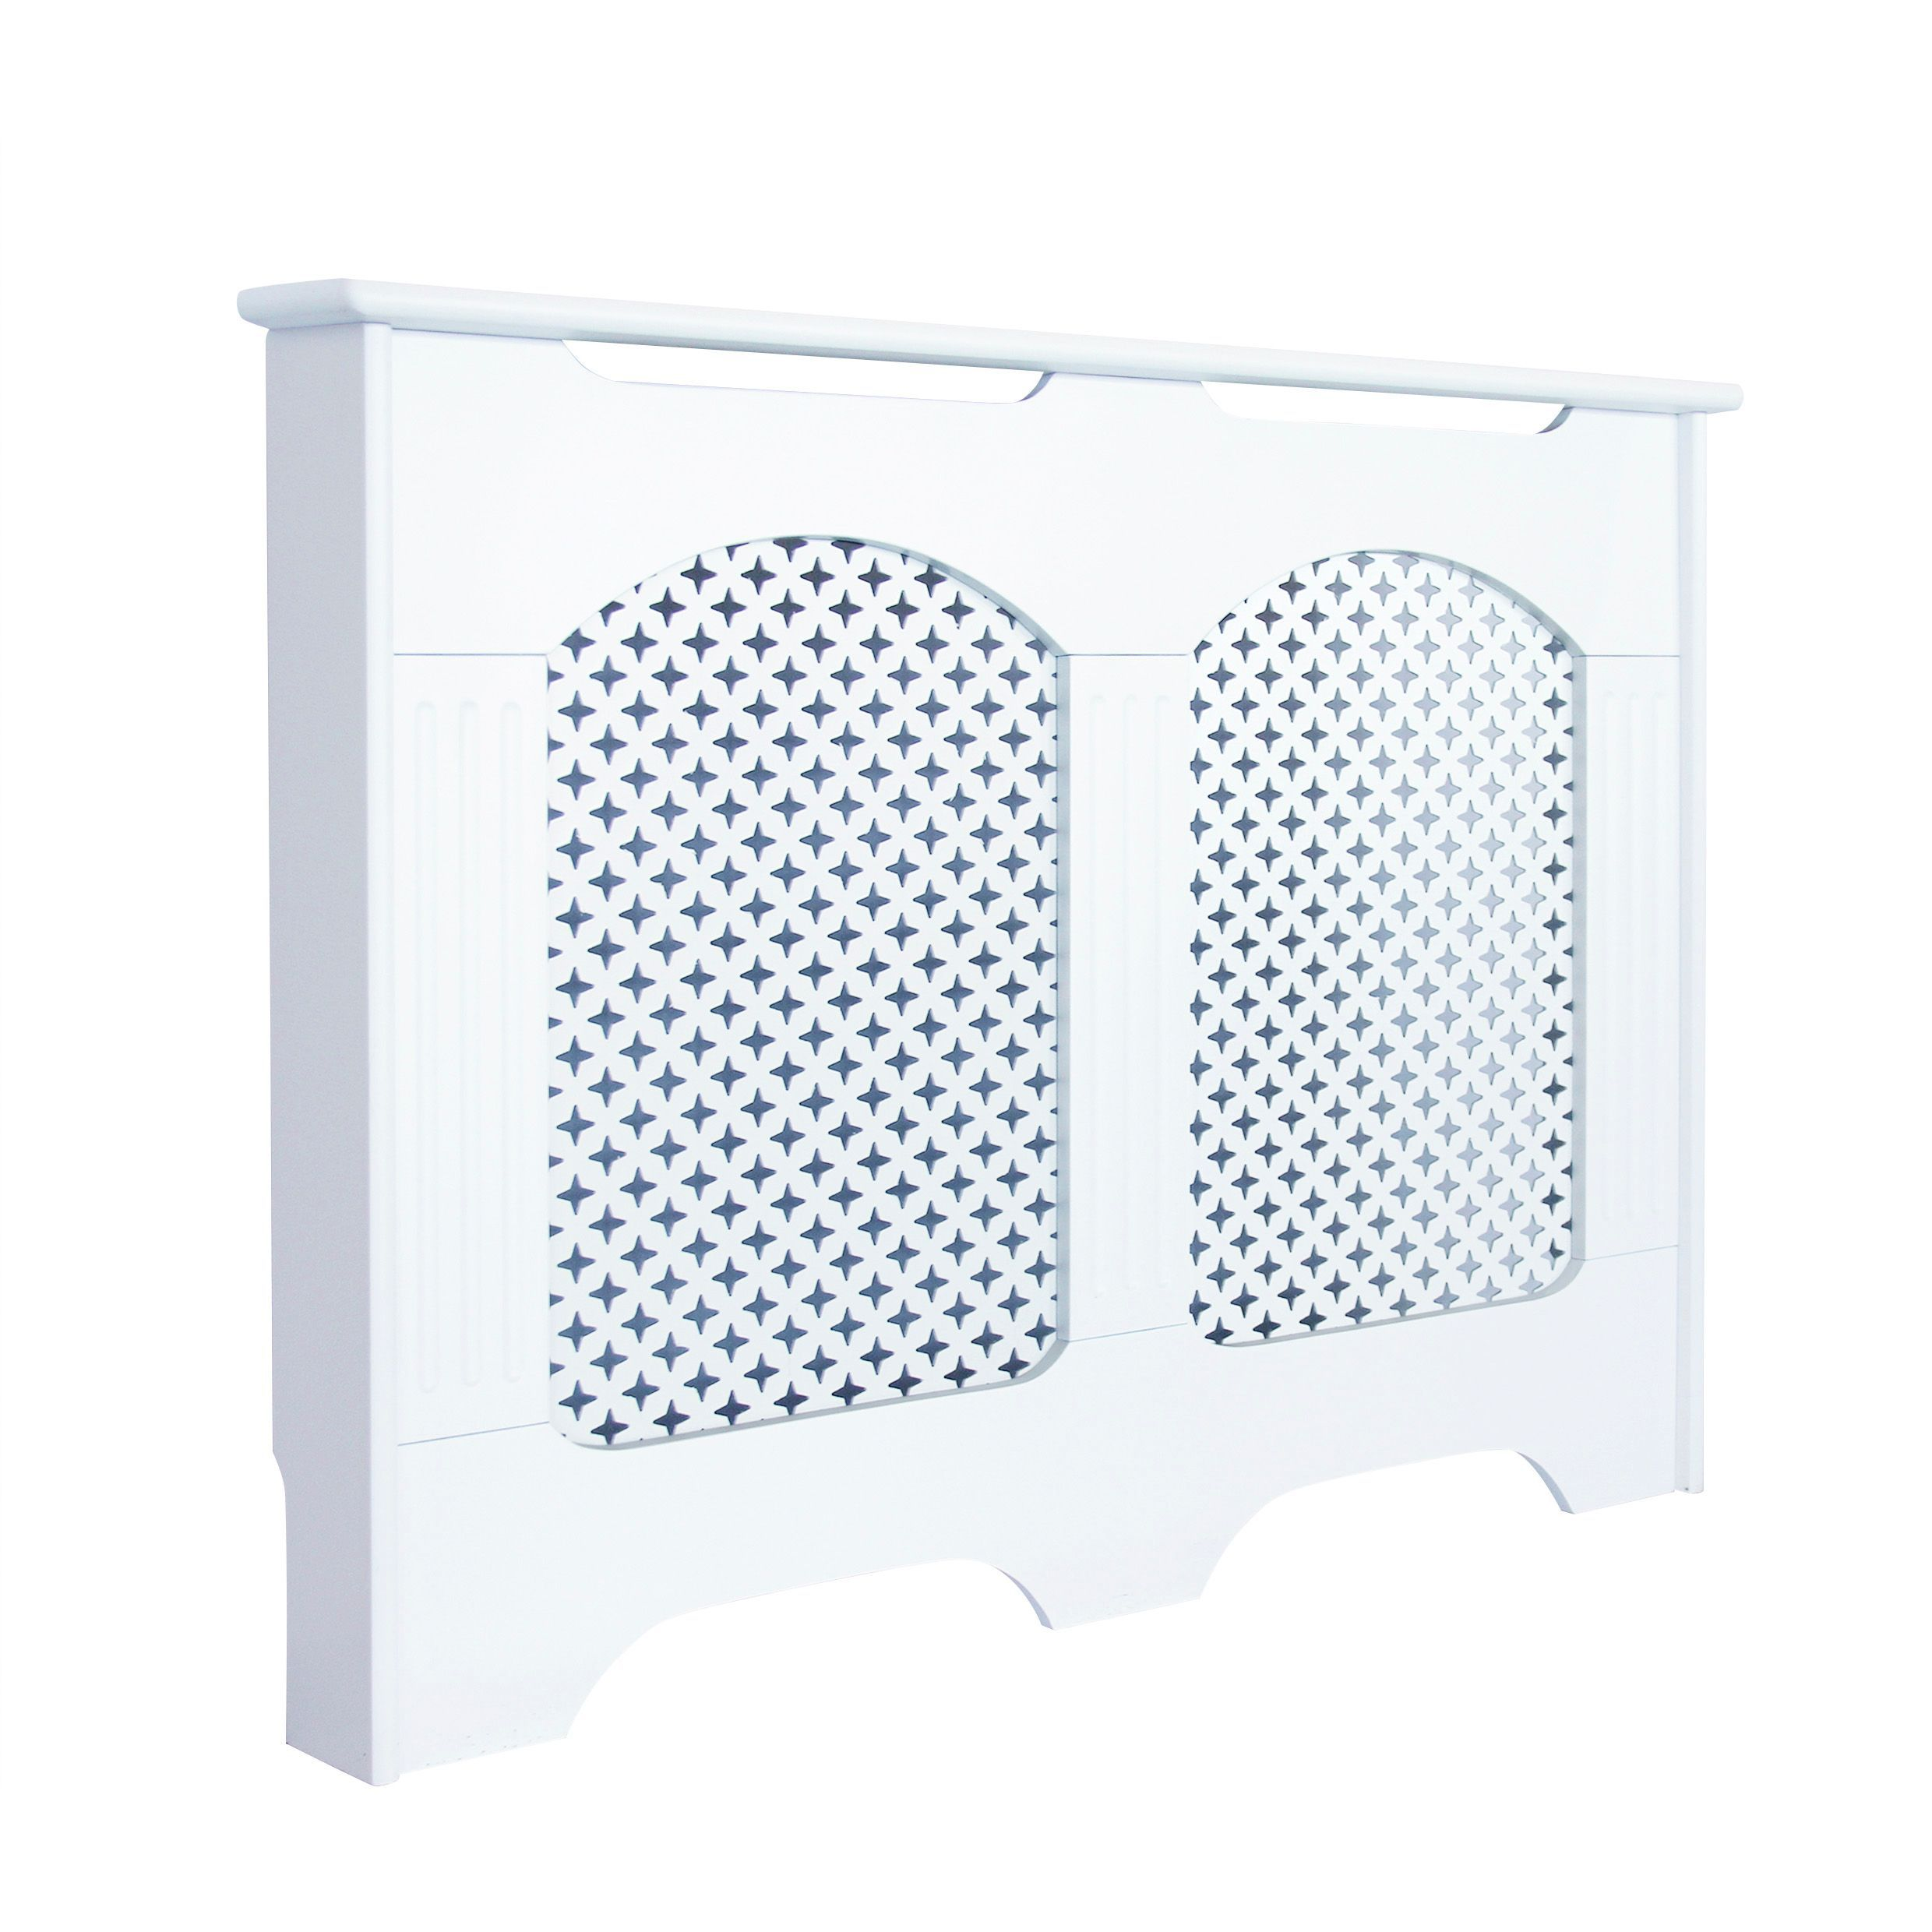 Tall Radiator Covers Modern Home Cabinet Living Room Furniture Mdf Wooden Heating Storage Extra Slimline Grill Painted 90cm Hallway Covers Radiator Cover Small Medium Large Radiator Cover White Living Room Furniture Cabinets